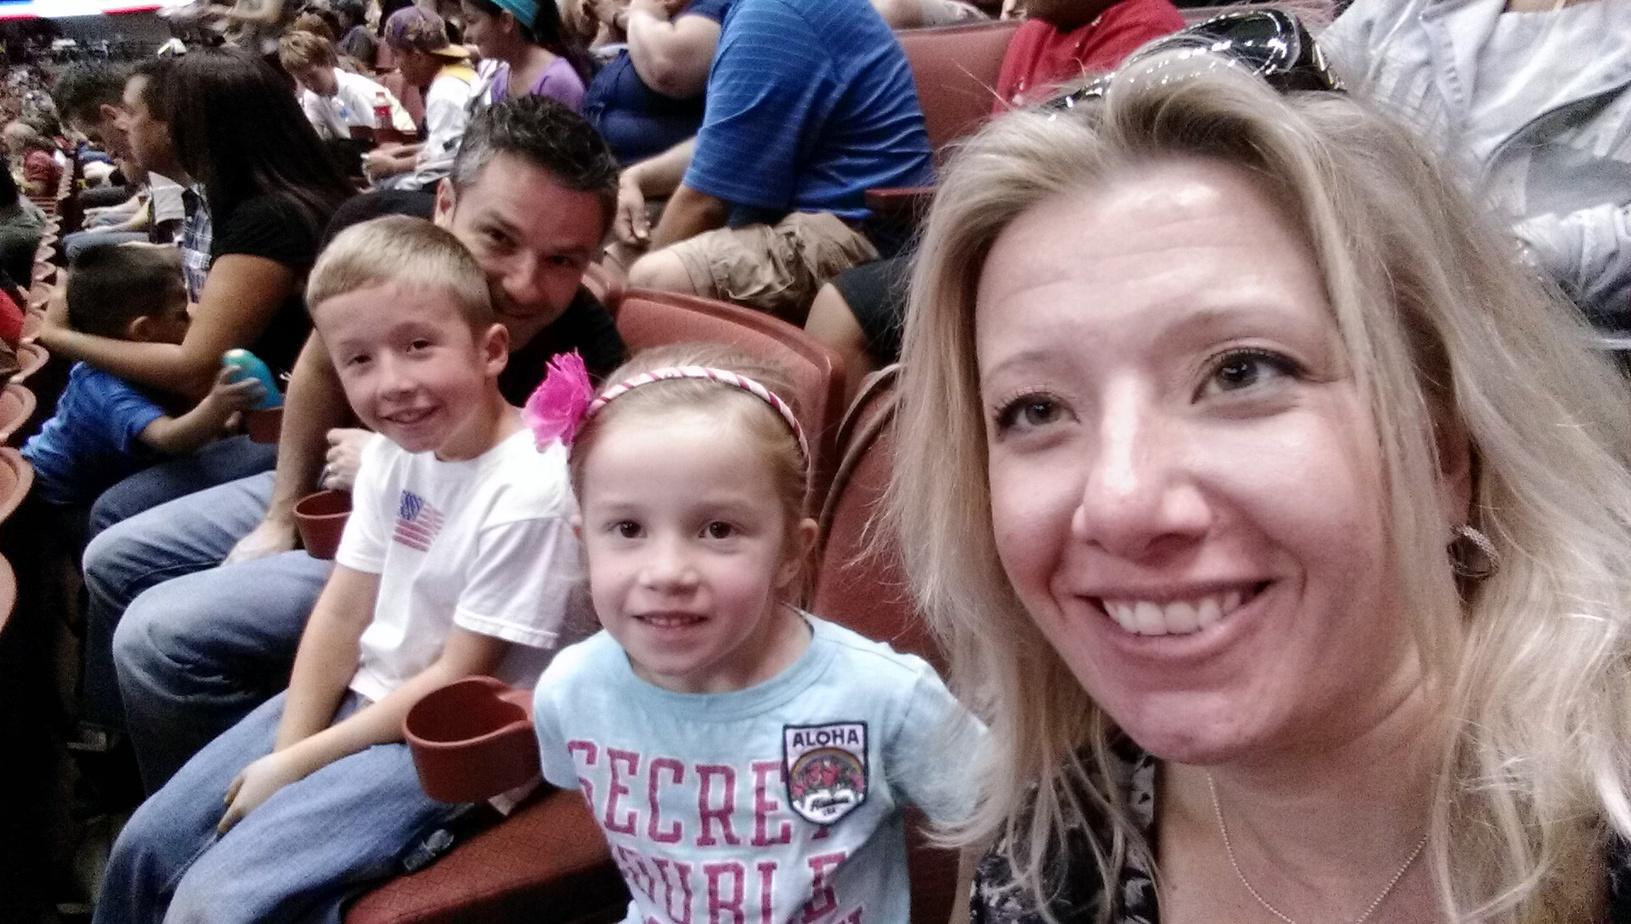 Our Harlem Globetrotters Game Experience {@Globies #GlobieFamily}